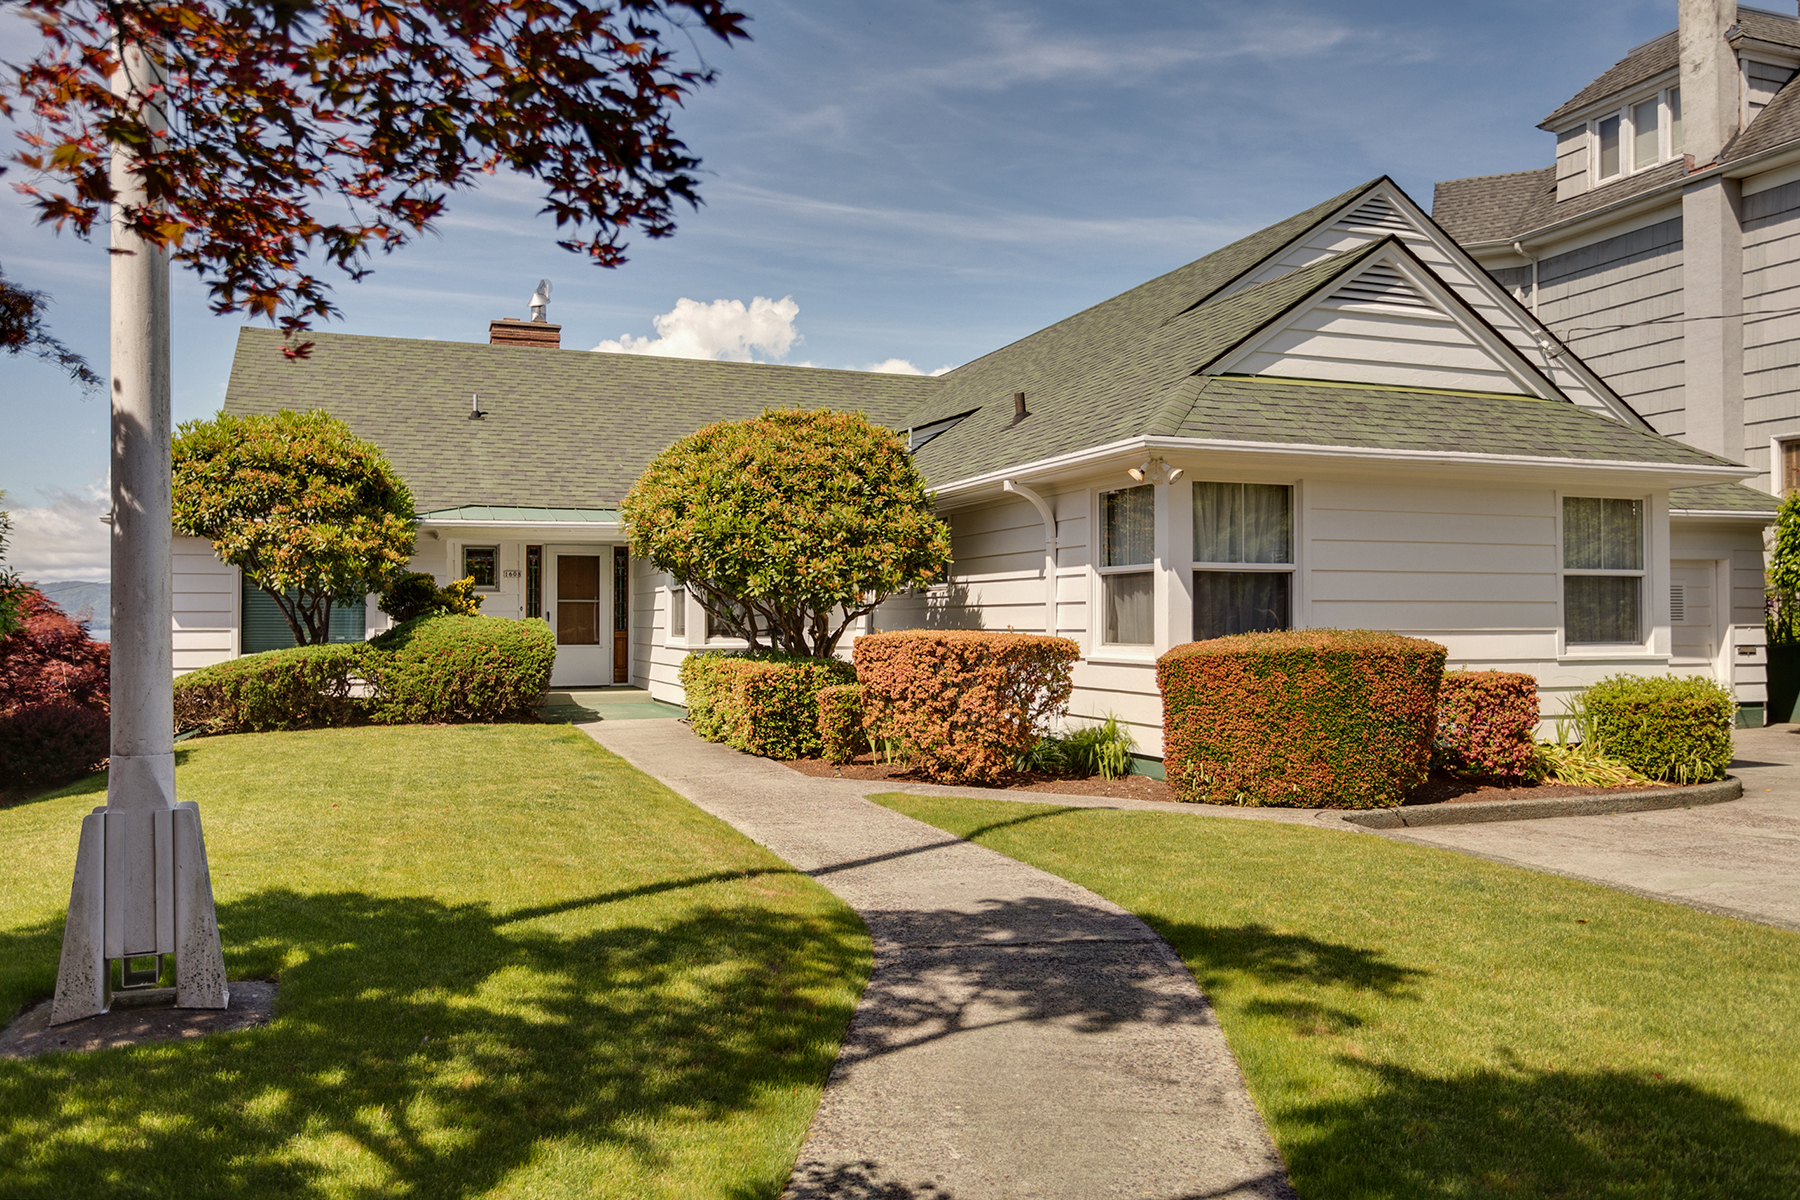 1608 Irving Ave, Astoria, OR - USA (photo 1)